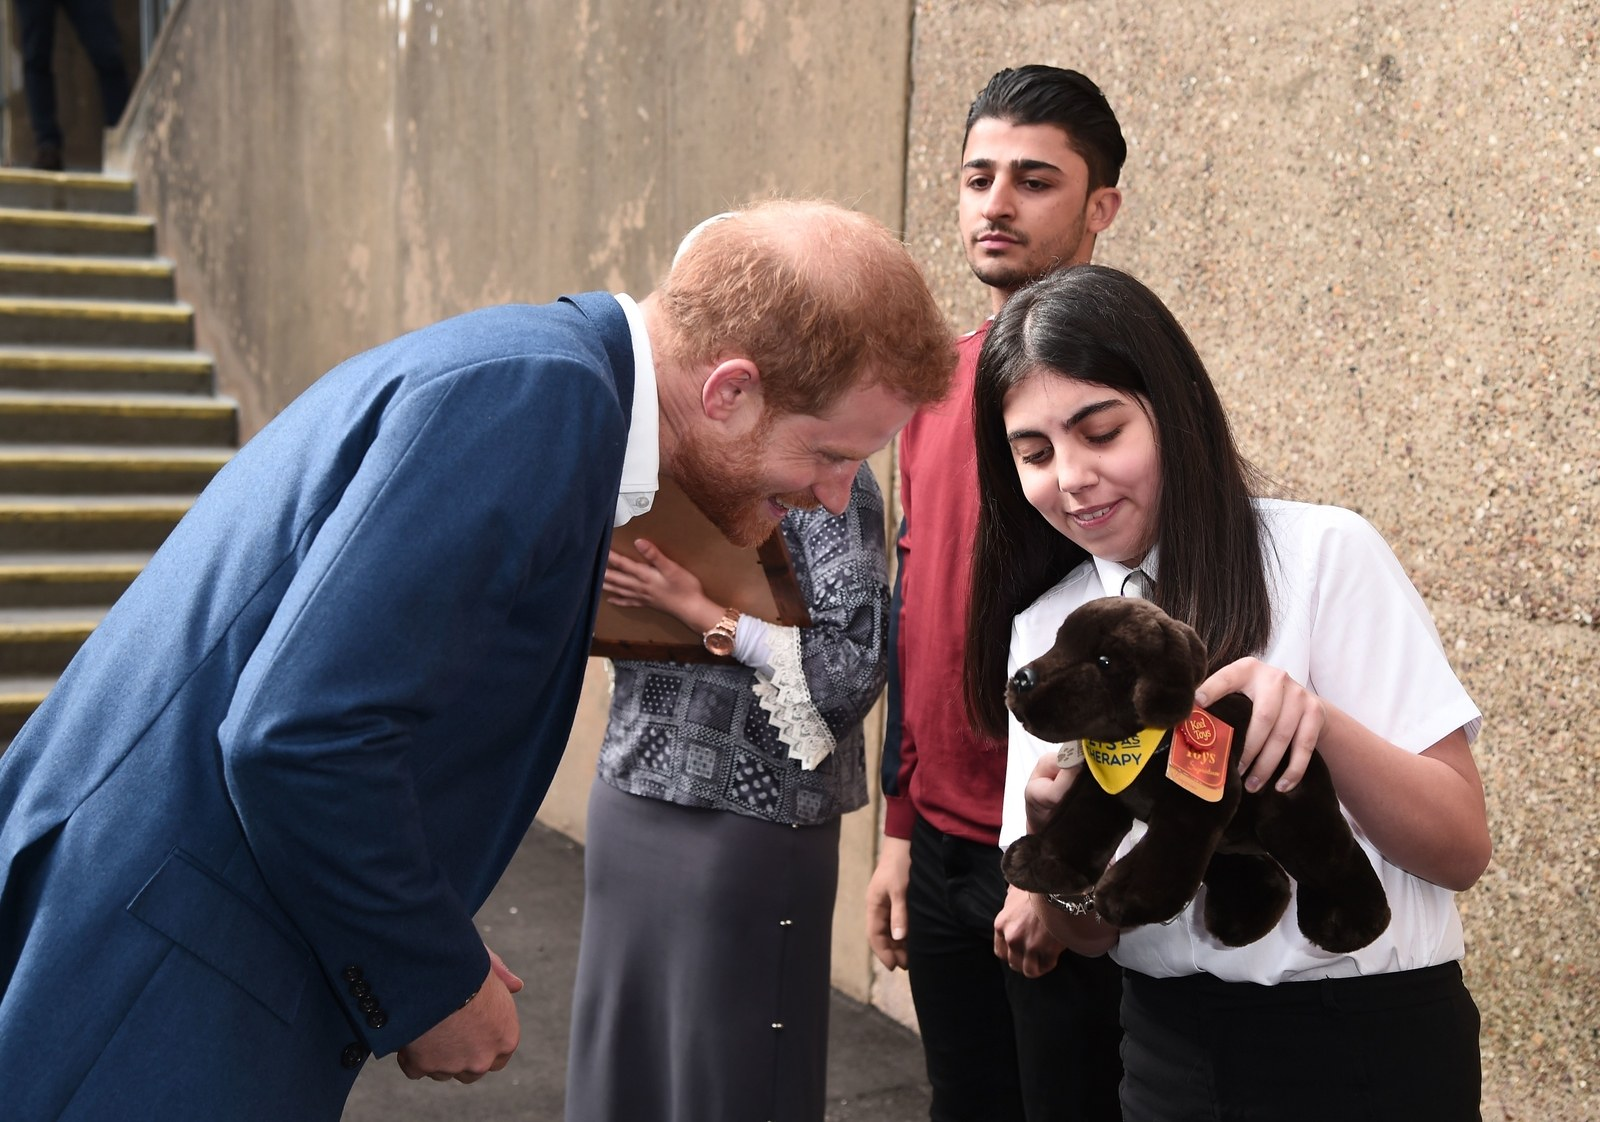 Britain's Prince Harry Duke of Sussex meets Meghan Markle's pen pal during a visit to Nottingham.